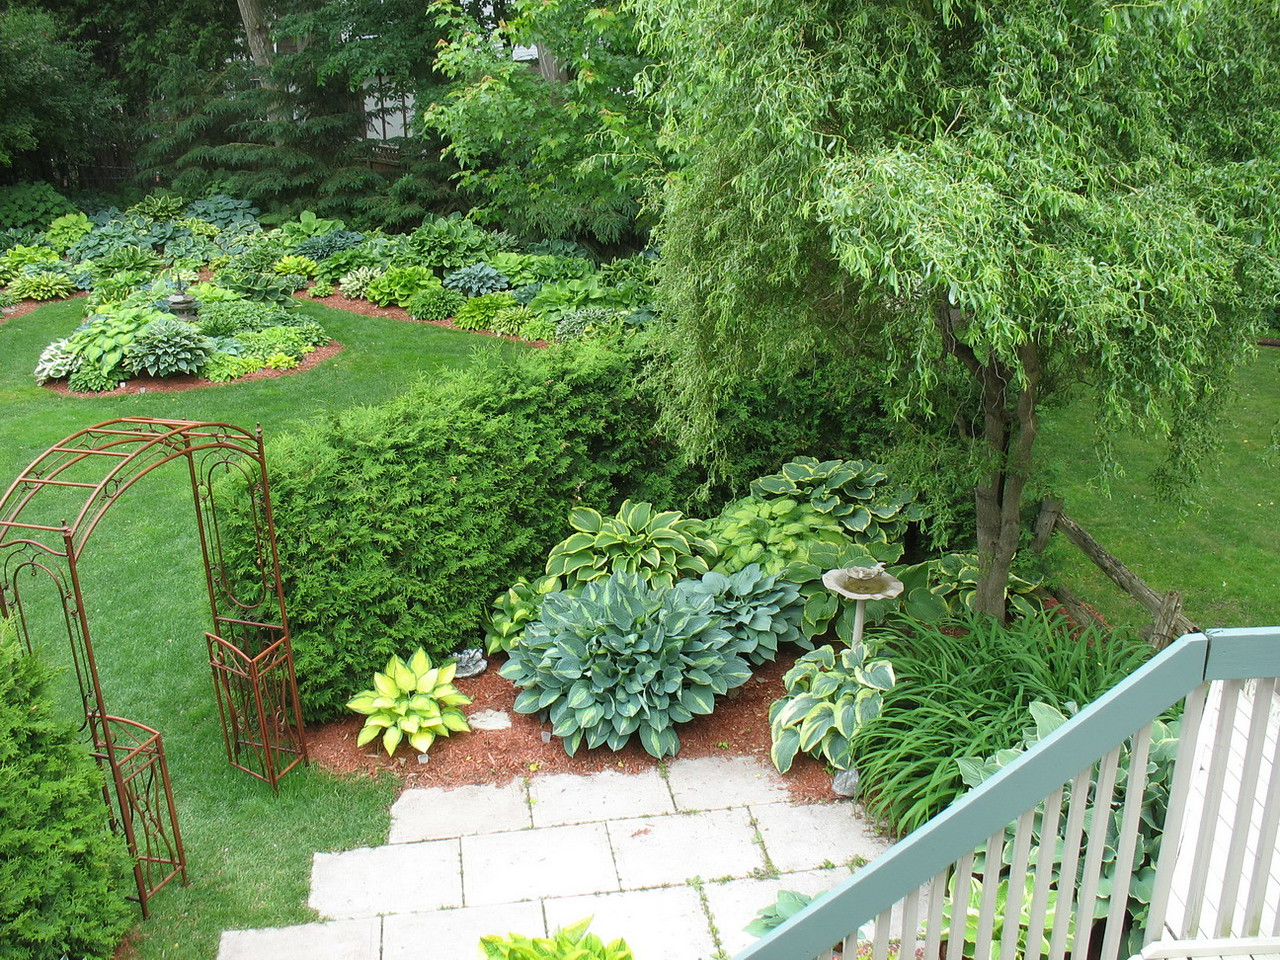 Don Budd's garden from deck. Don's was the first garden on the tour, followed by a visit to Budd Gardens.